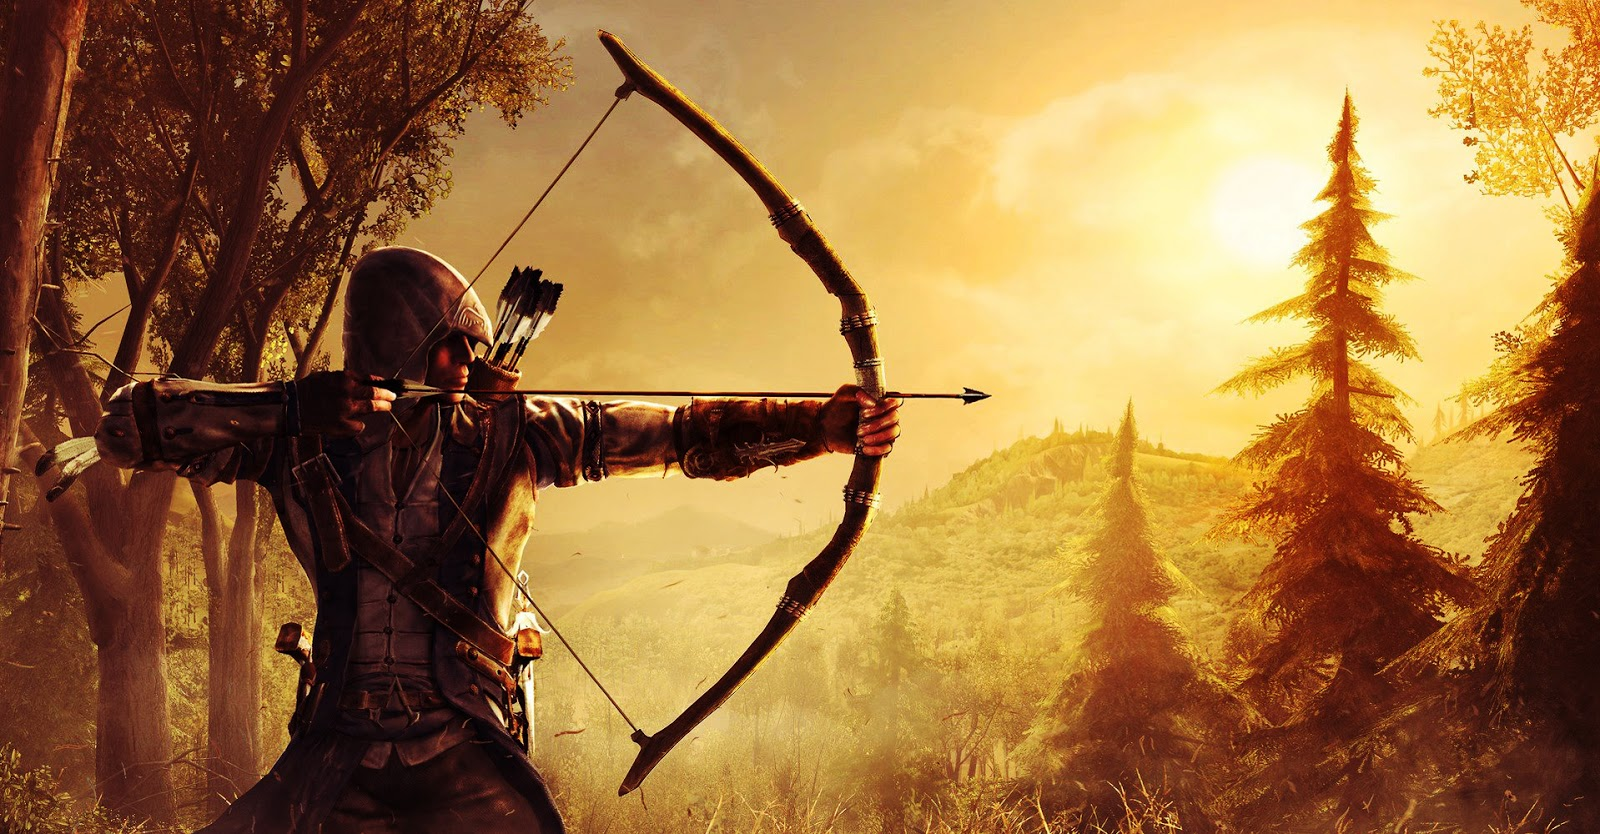 Big Cute Wallpaper Desktop Wallpaper Assassin S Creed Iii Archer Desktop